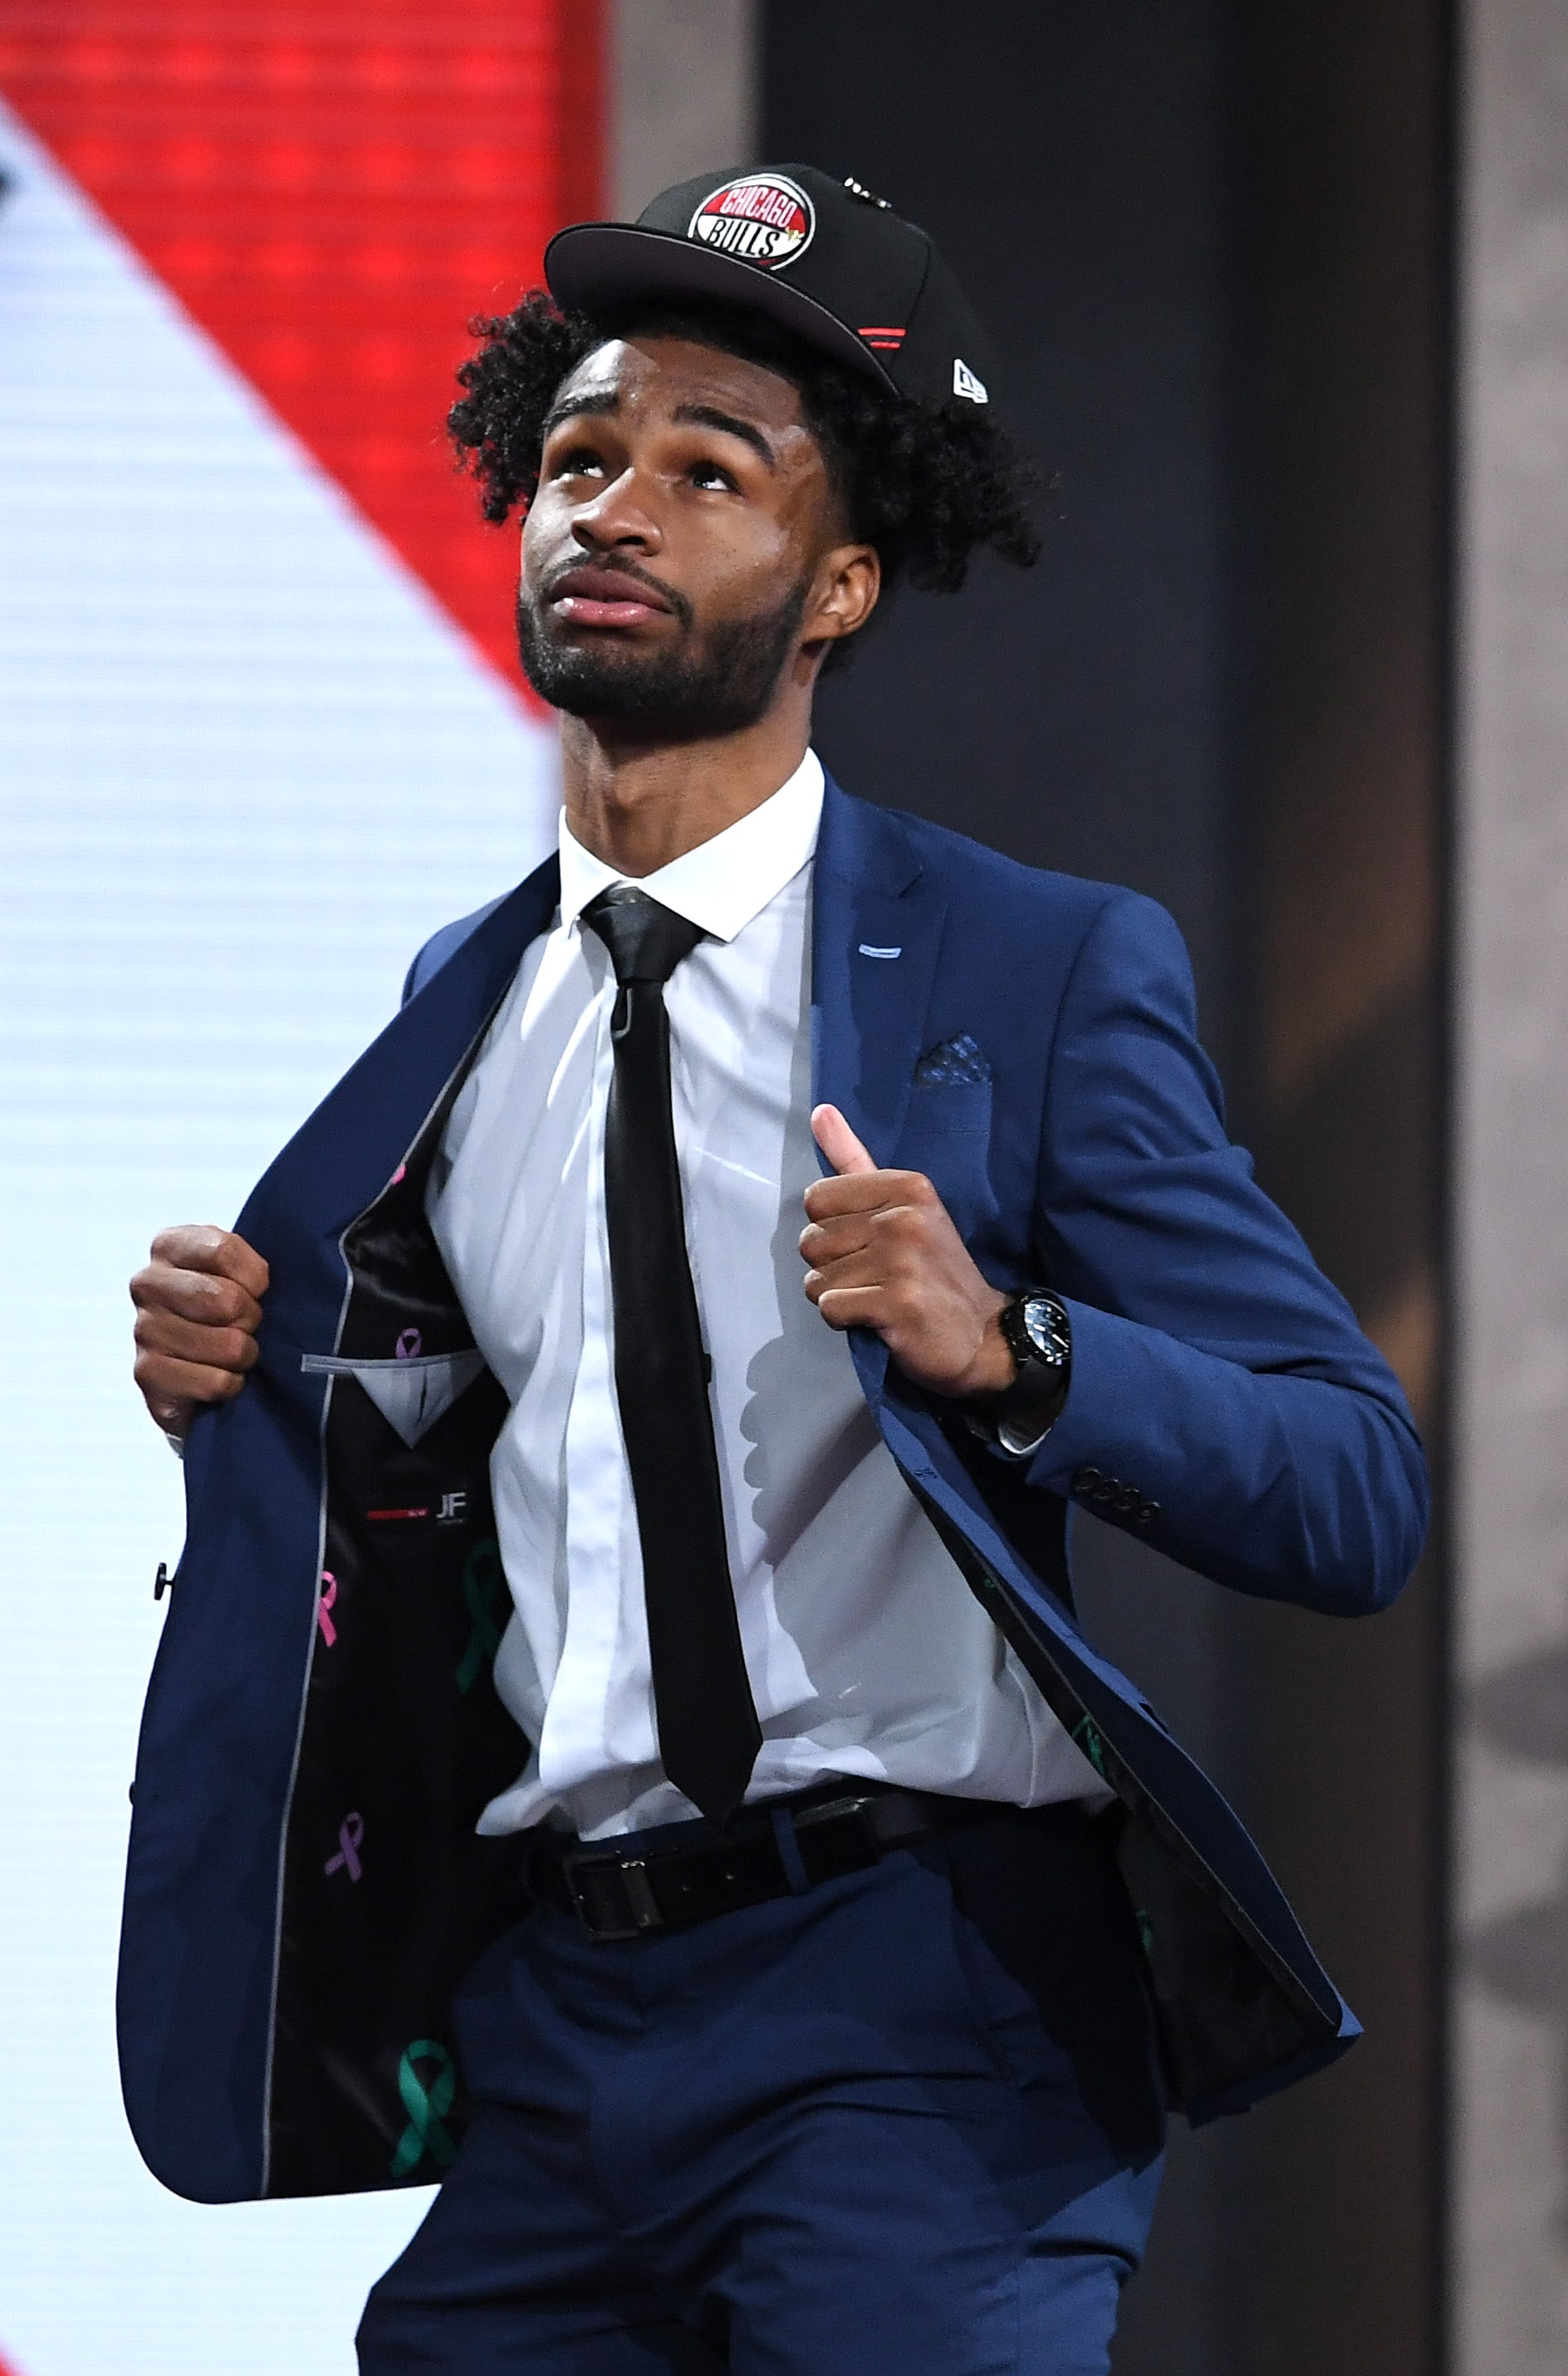 Coby White at the NBA Draft